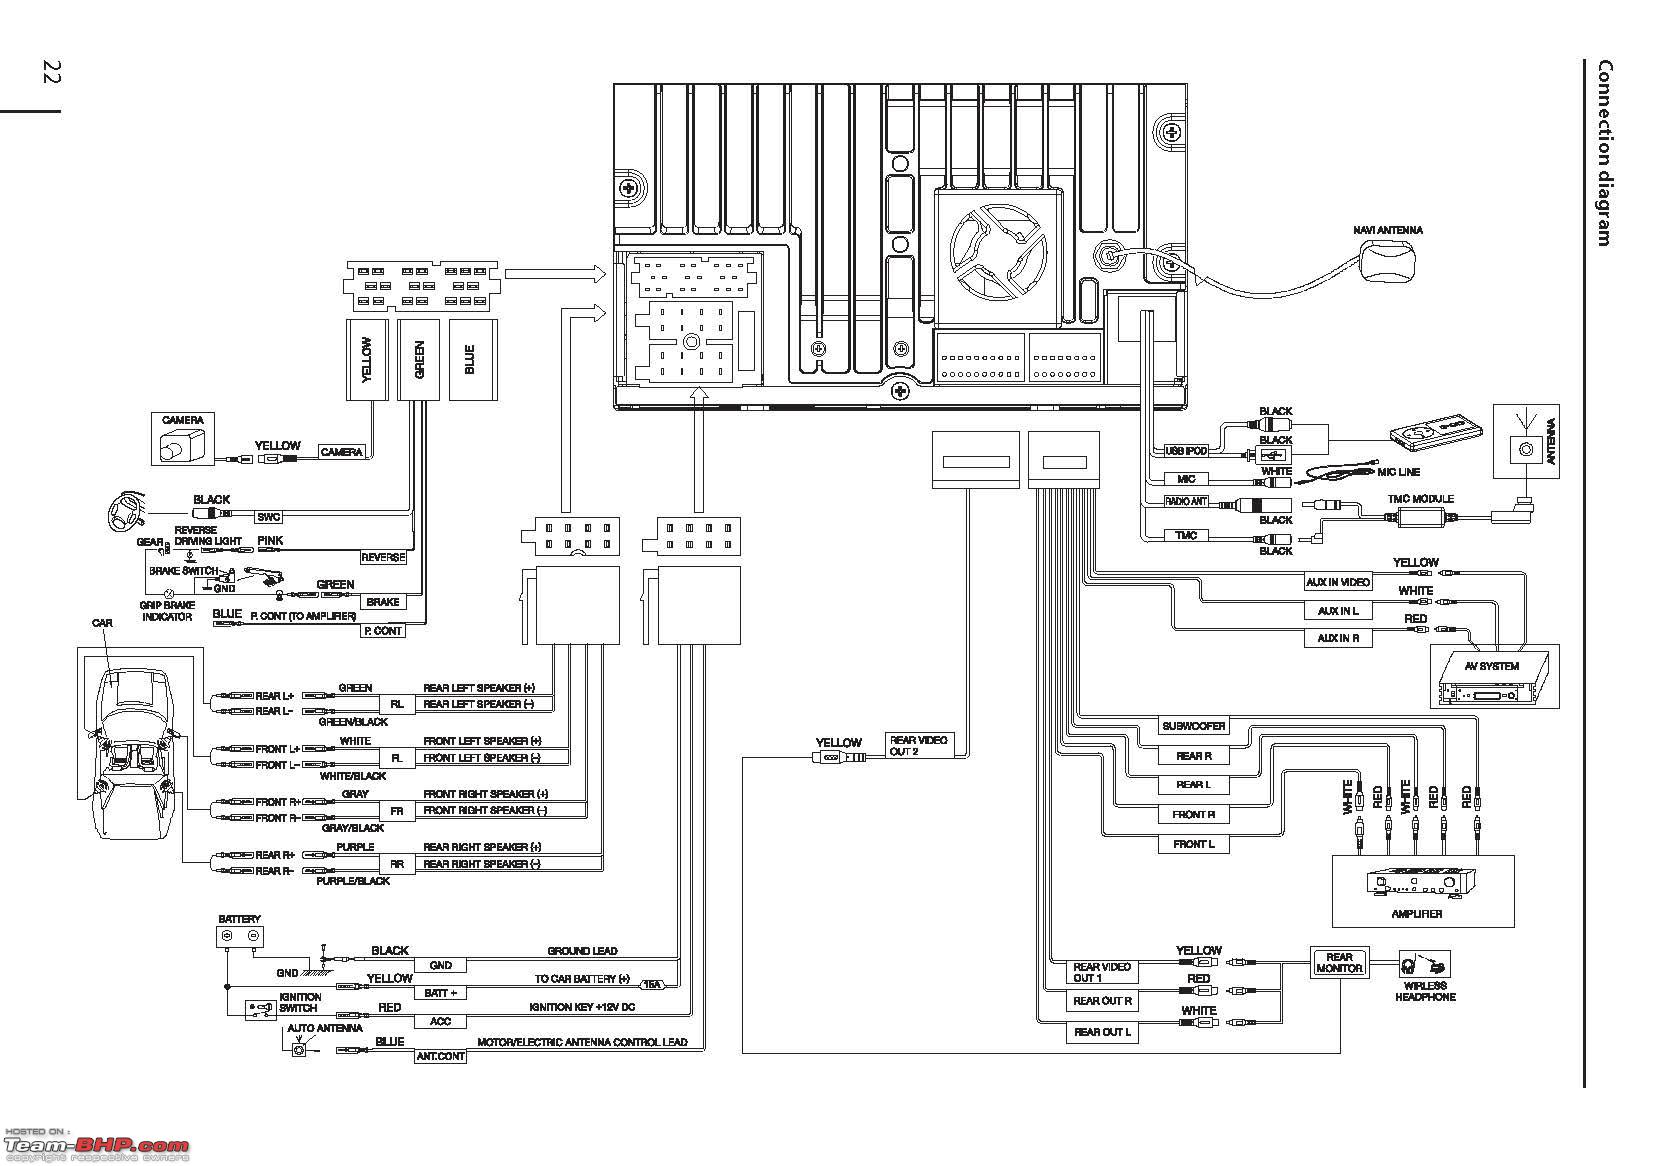 Sony Cd Wiring Diagram